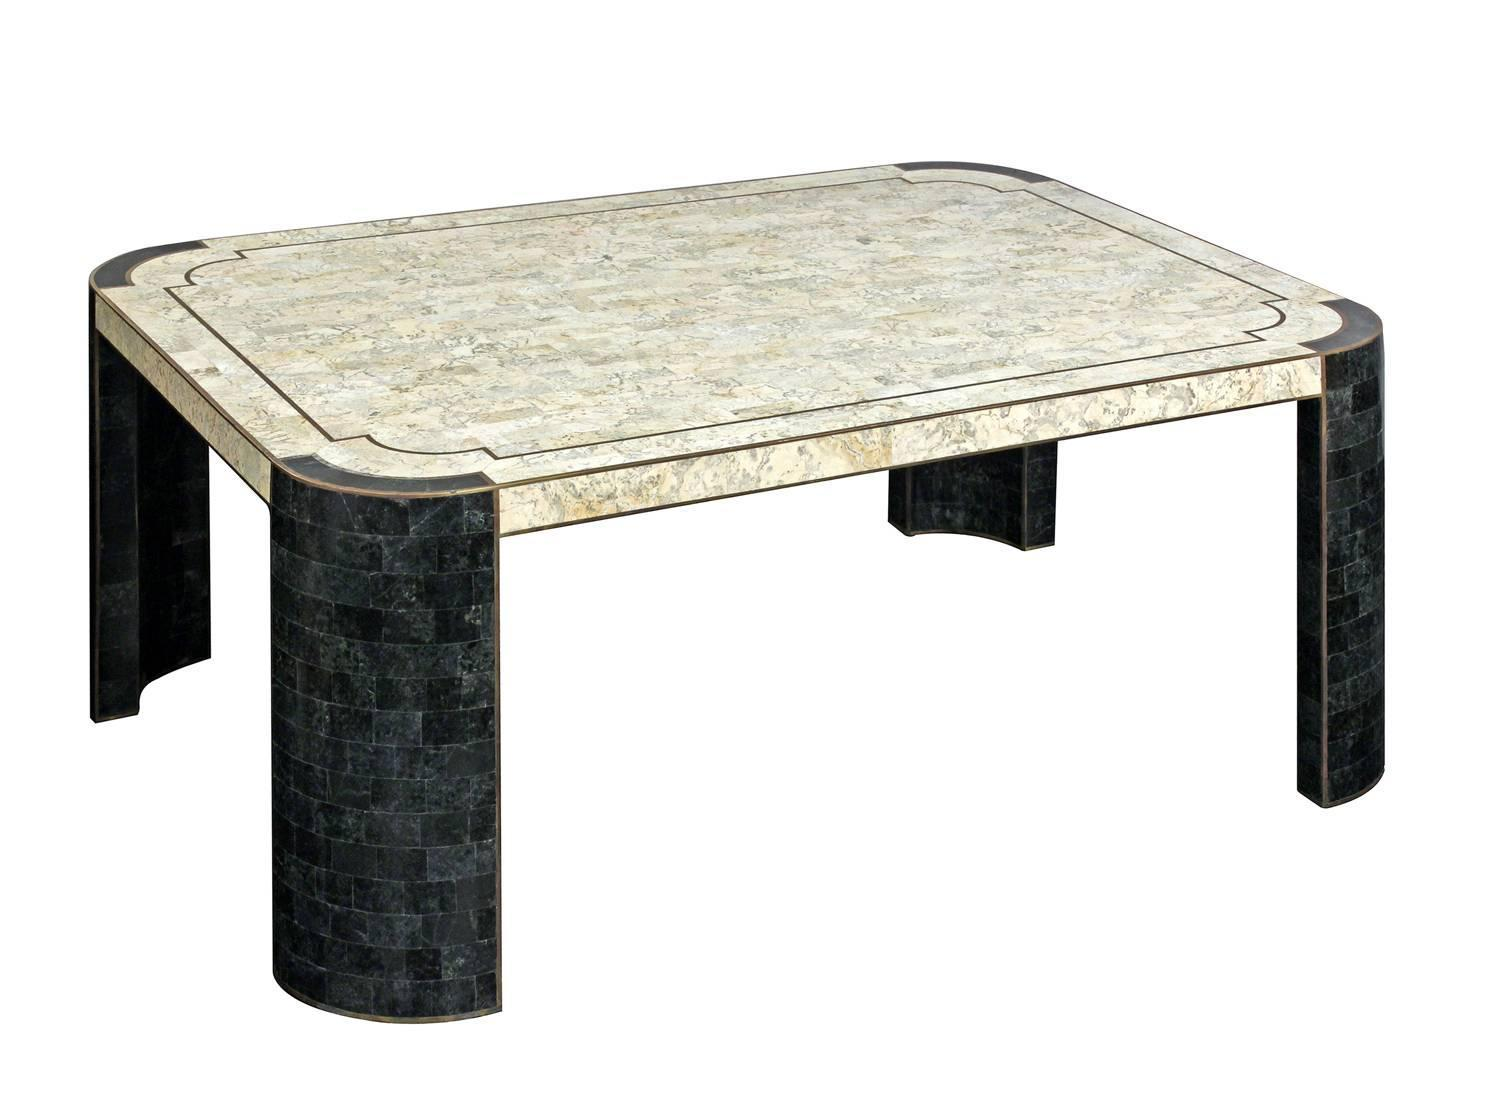 Chic Coffee Table In Tessellated Stone By Maitland Smith For Sale At 1stdibs